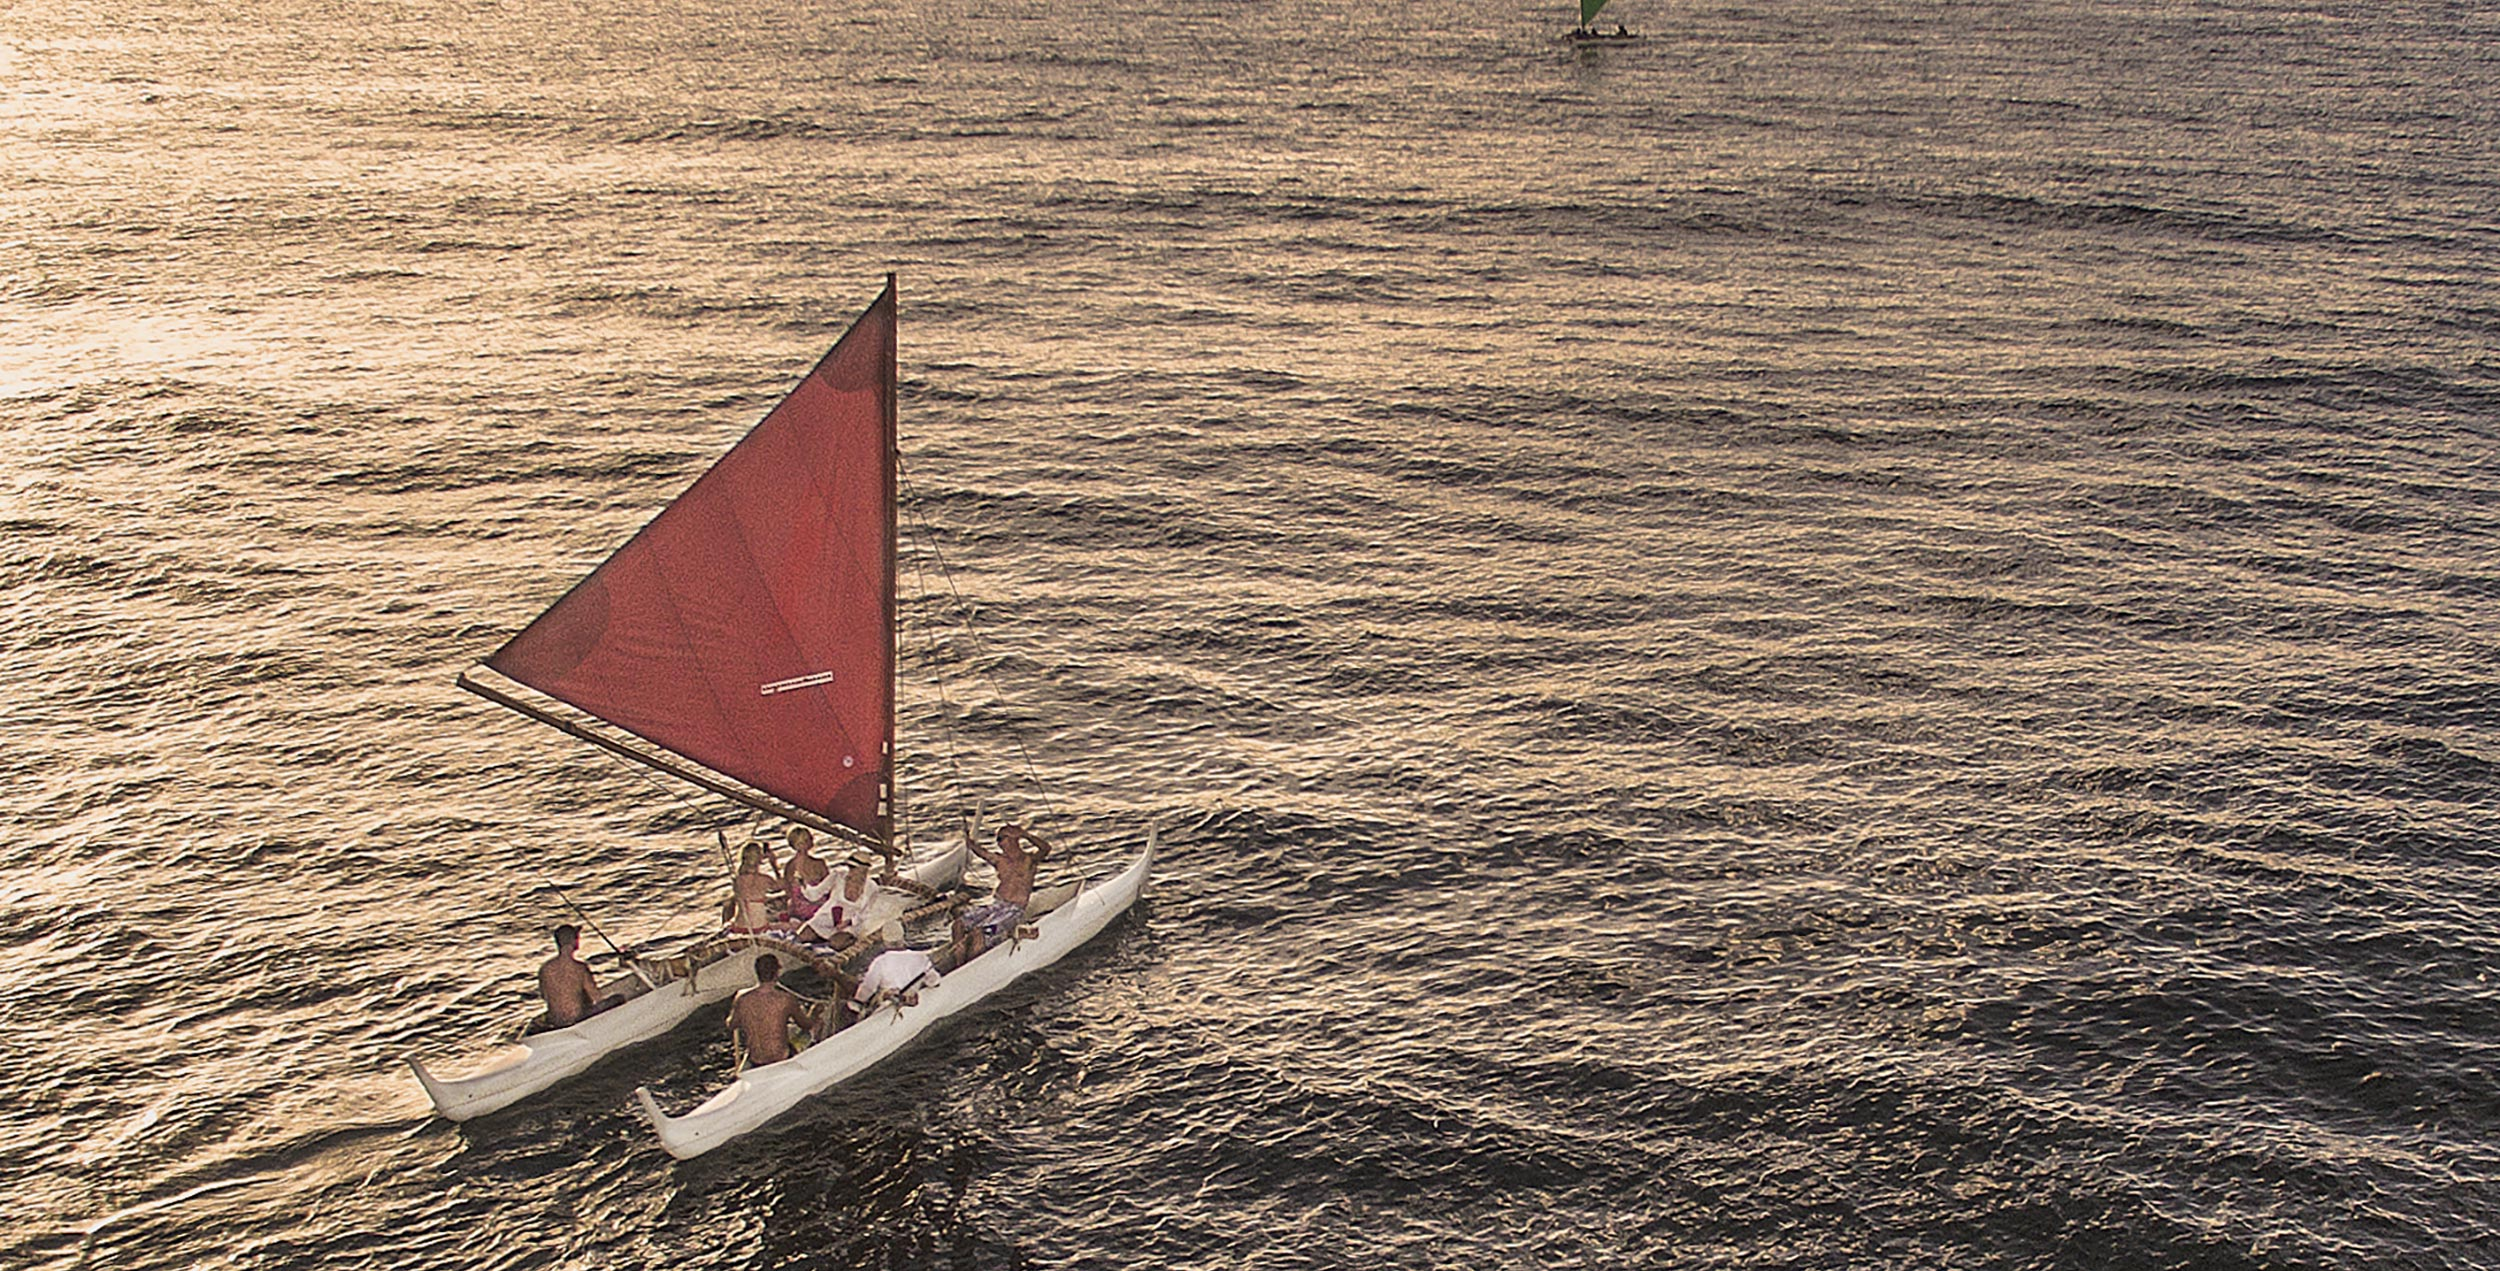 Come sail with us on Hanalei!